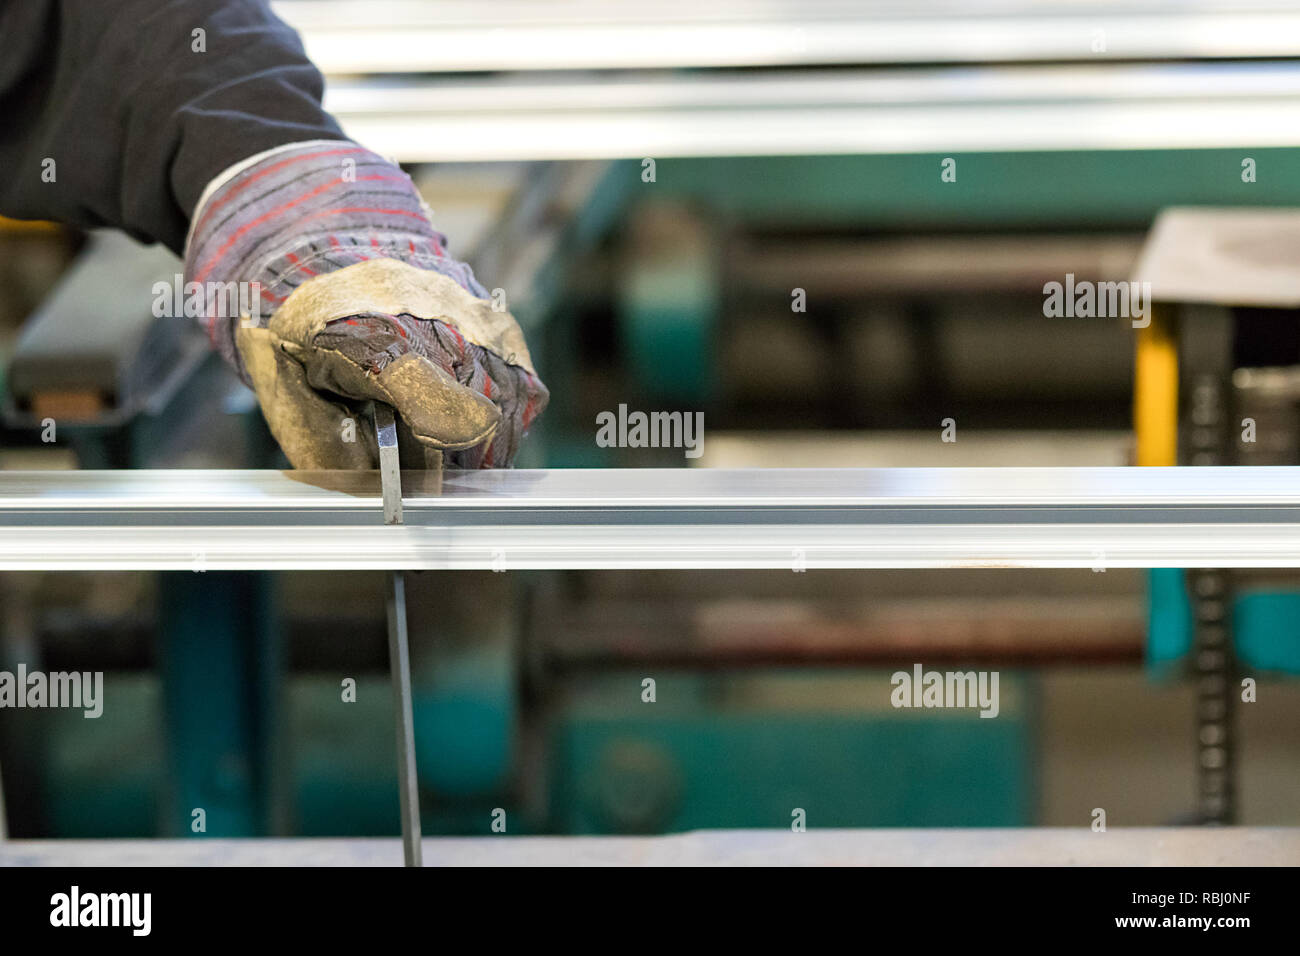 A man machine operator using safety gloves controlling the stretch of an aluminium profile with a squad. - Stock Image